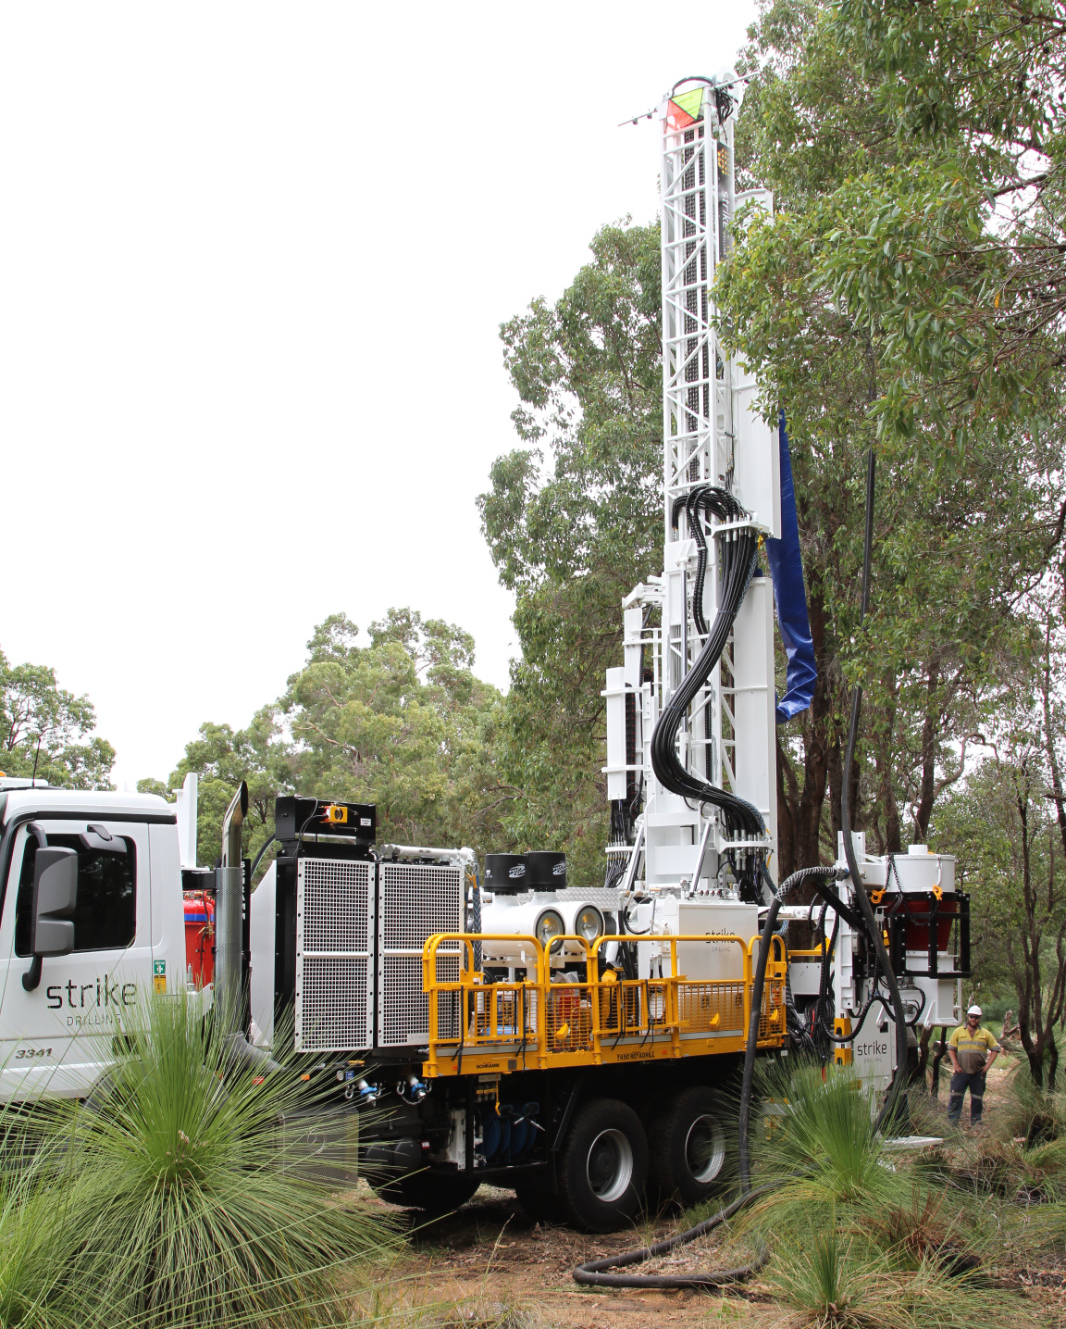 Schramm T450 Rig Outside Next to Tall Trees